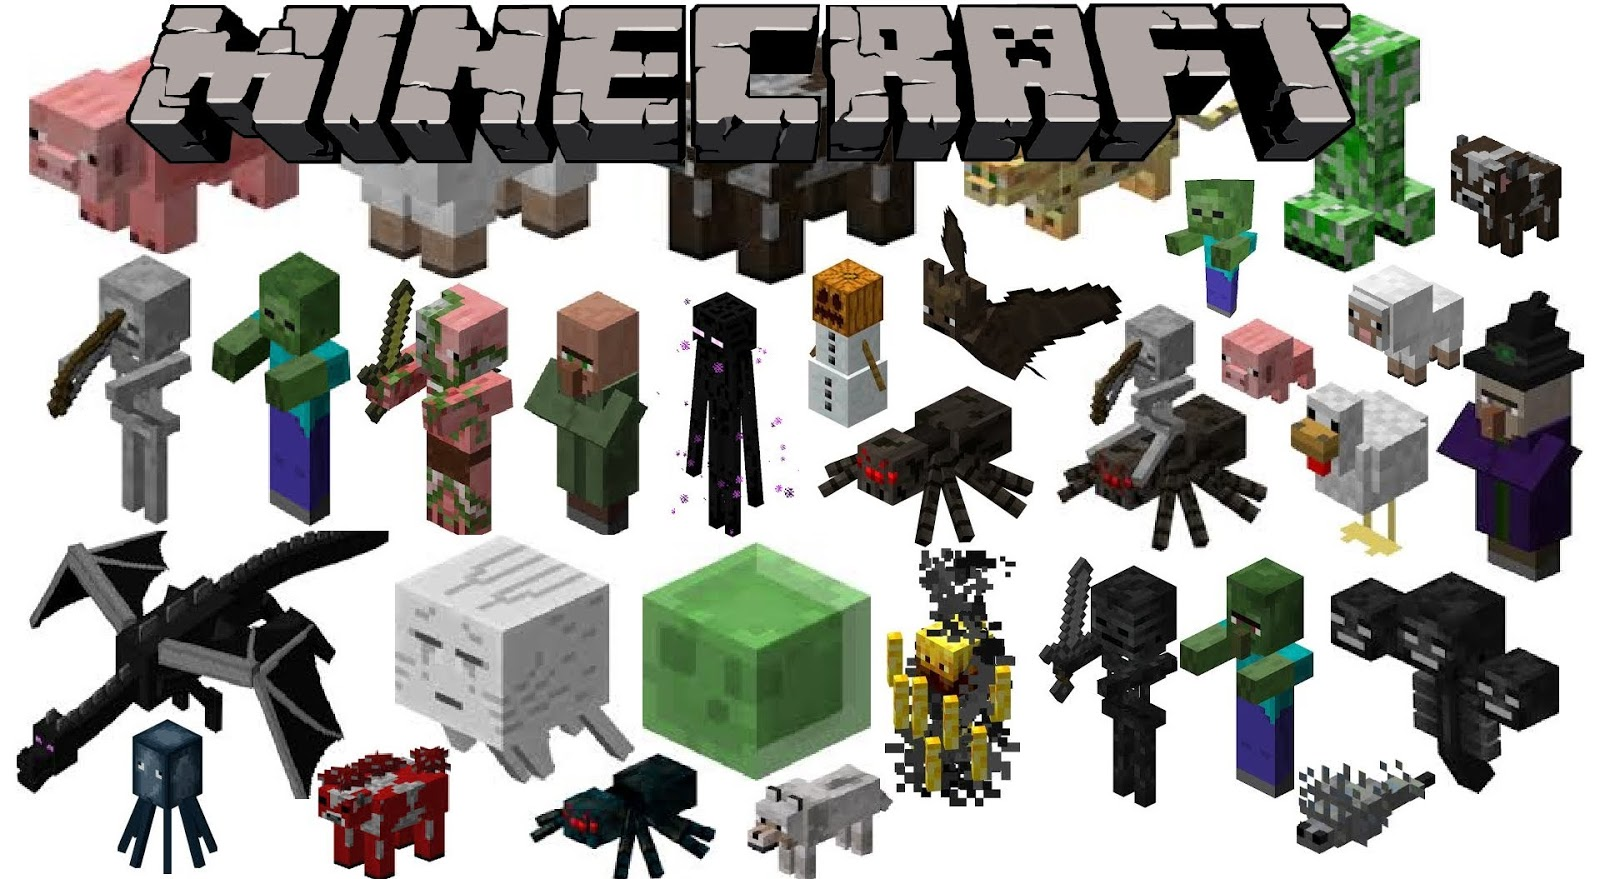 minecraft maps horror with So Luoc Ve Mobs Trong Minecraft Phan 2 on skydaz as well Magic Mod Installer For Minecraft 1 7 10 together with Elderwood Medieval Village Map For Minecraft additionally Blockade 3d Beta Download Steam as well Save Jen.